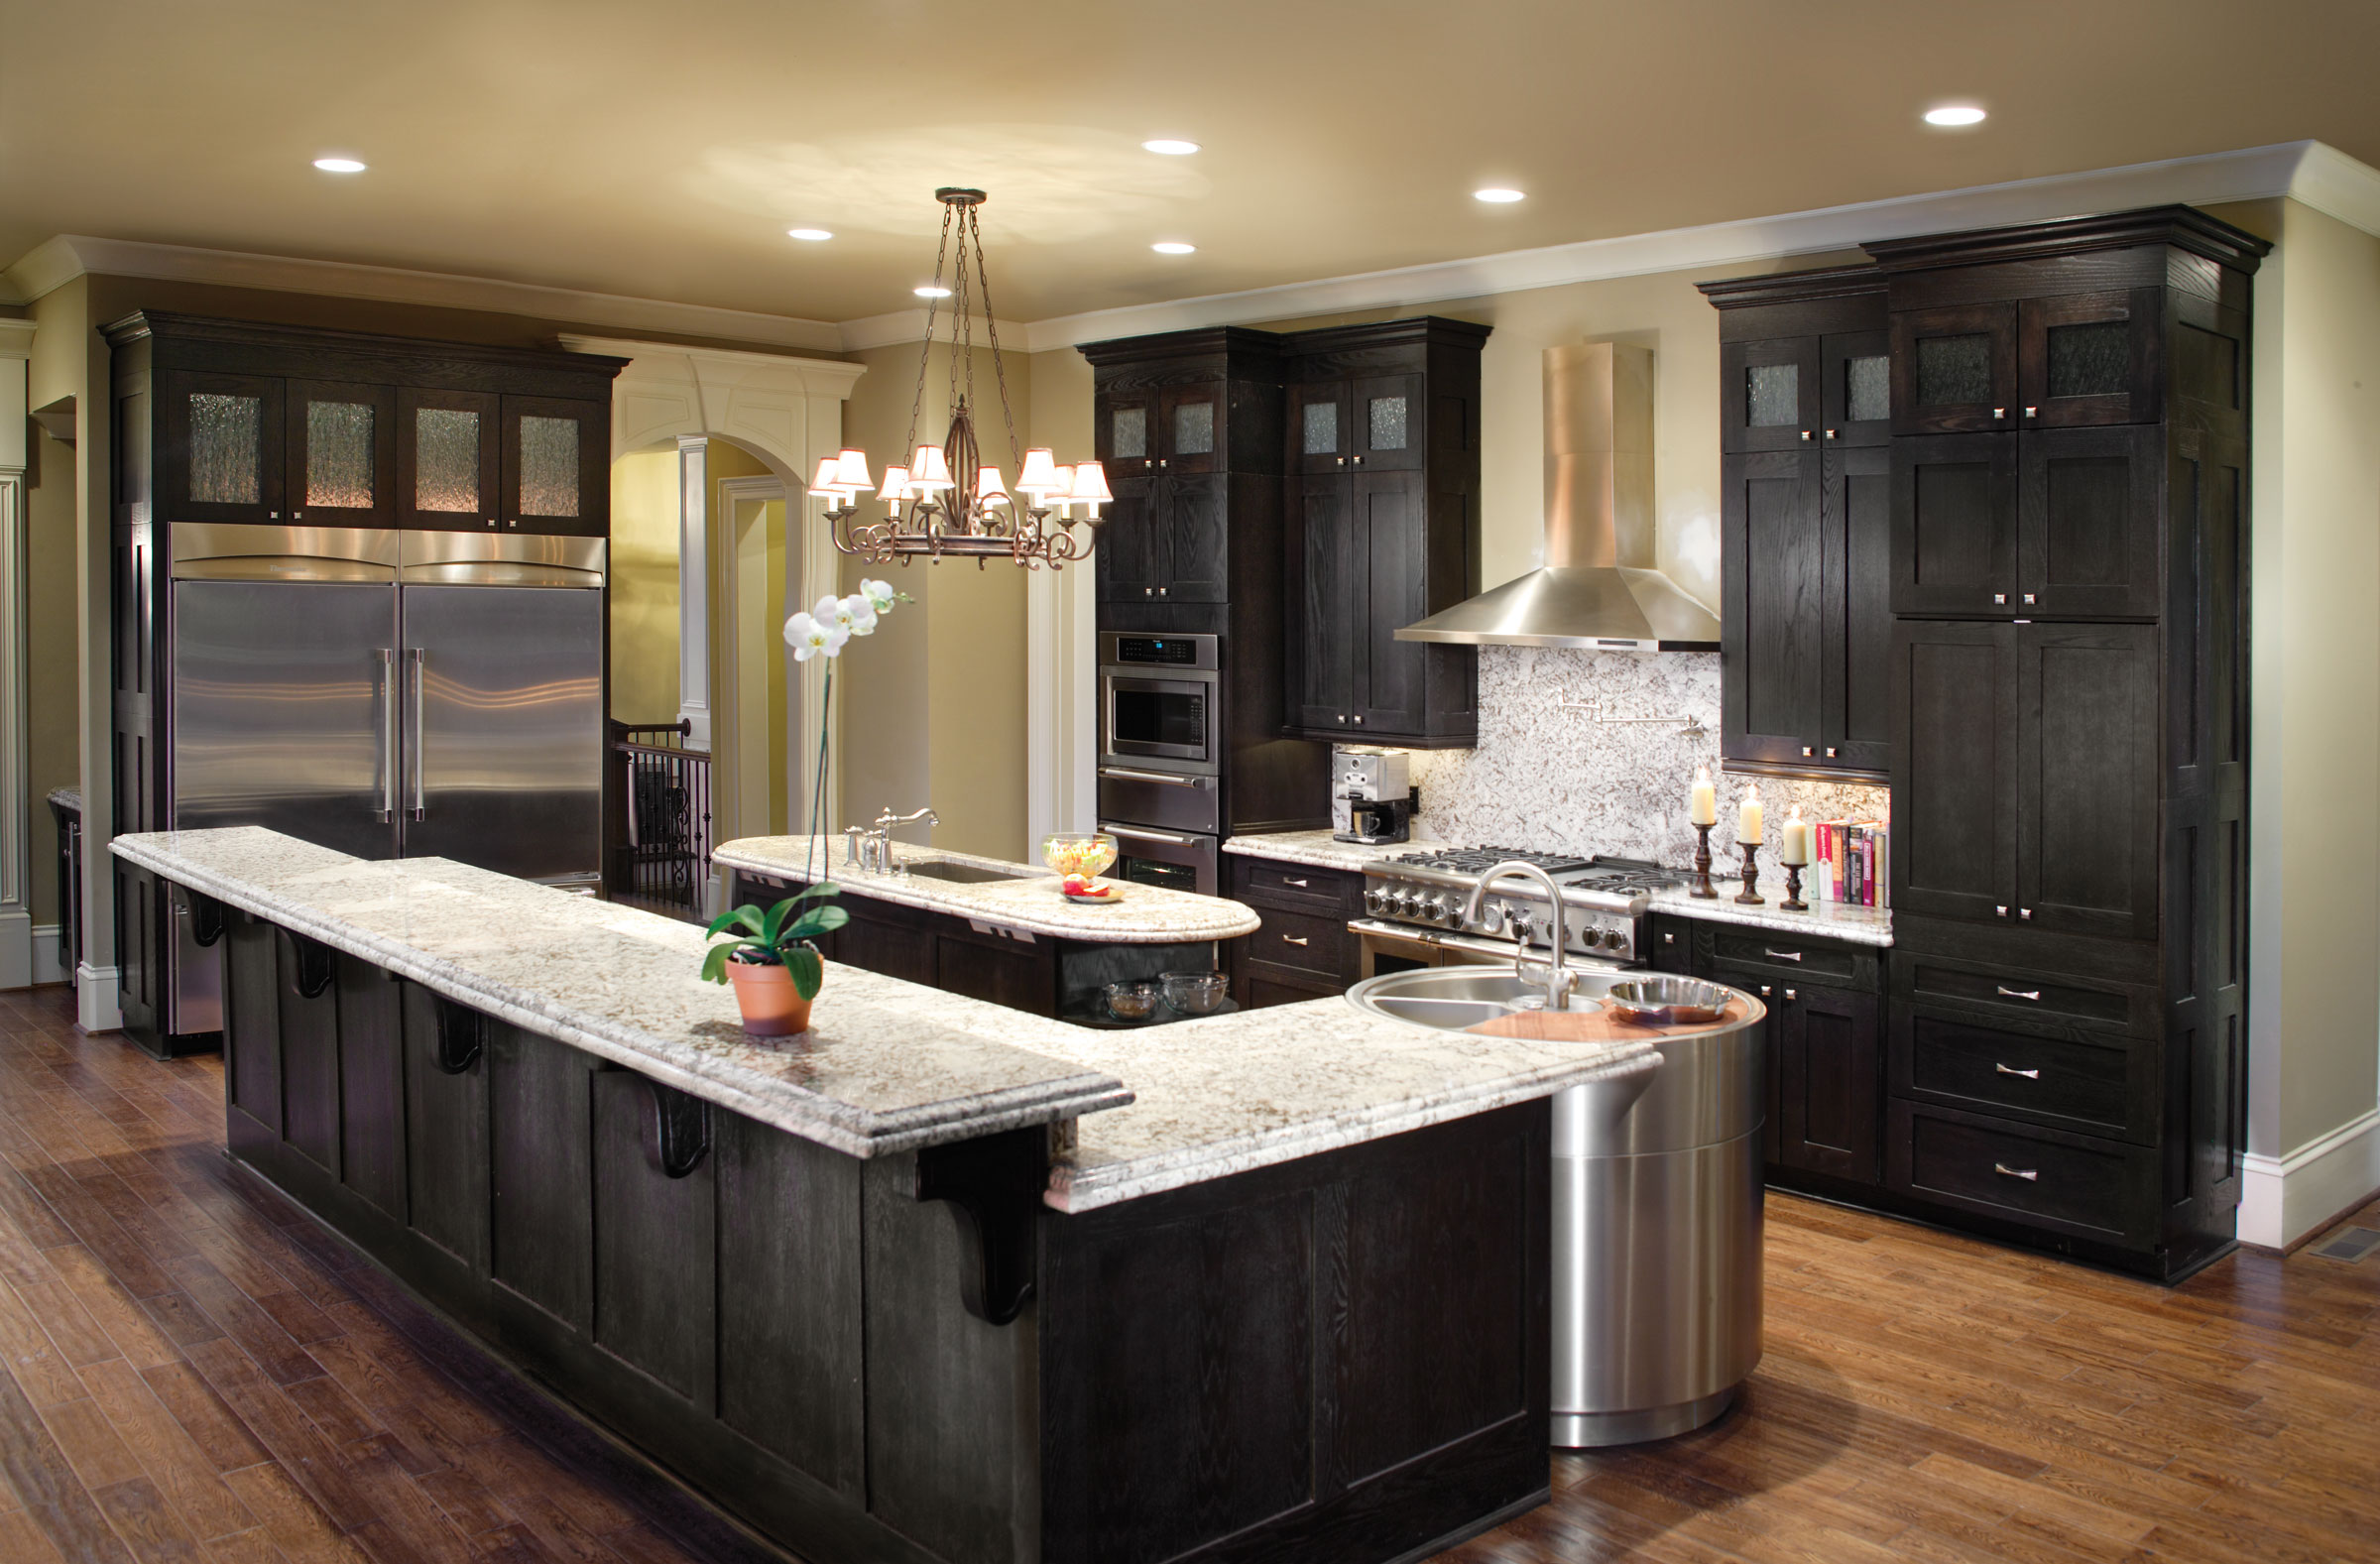 Custom bathroom kitchen cabinets phoenix cabinets by for Custom cabinetry